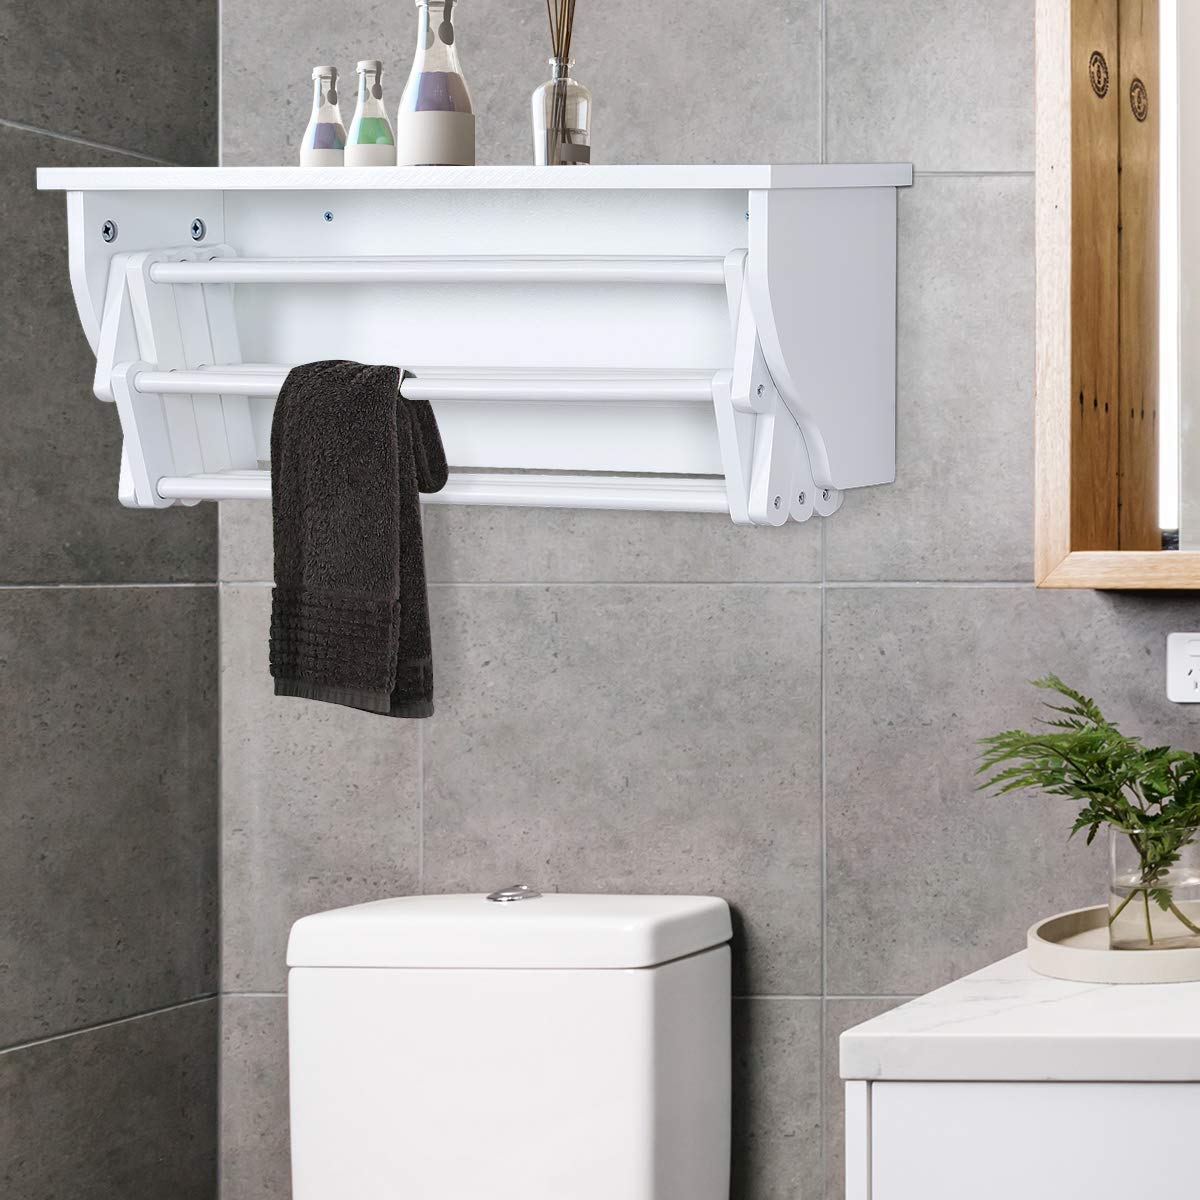 Wall Mount Pull Out Drying Rack For Bathroom Or Laundry Room